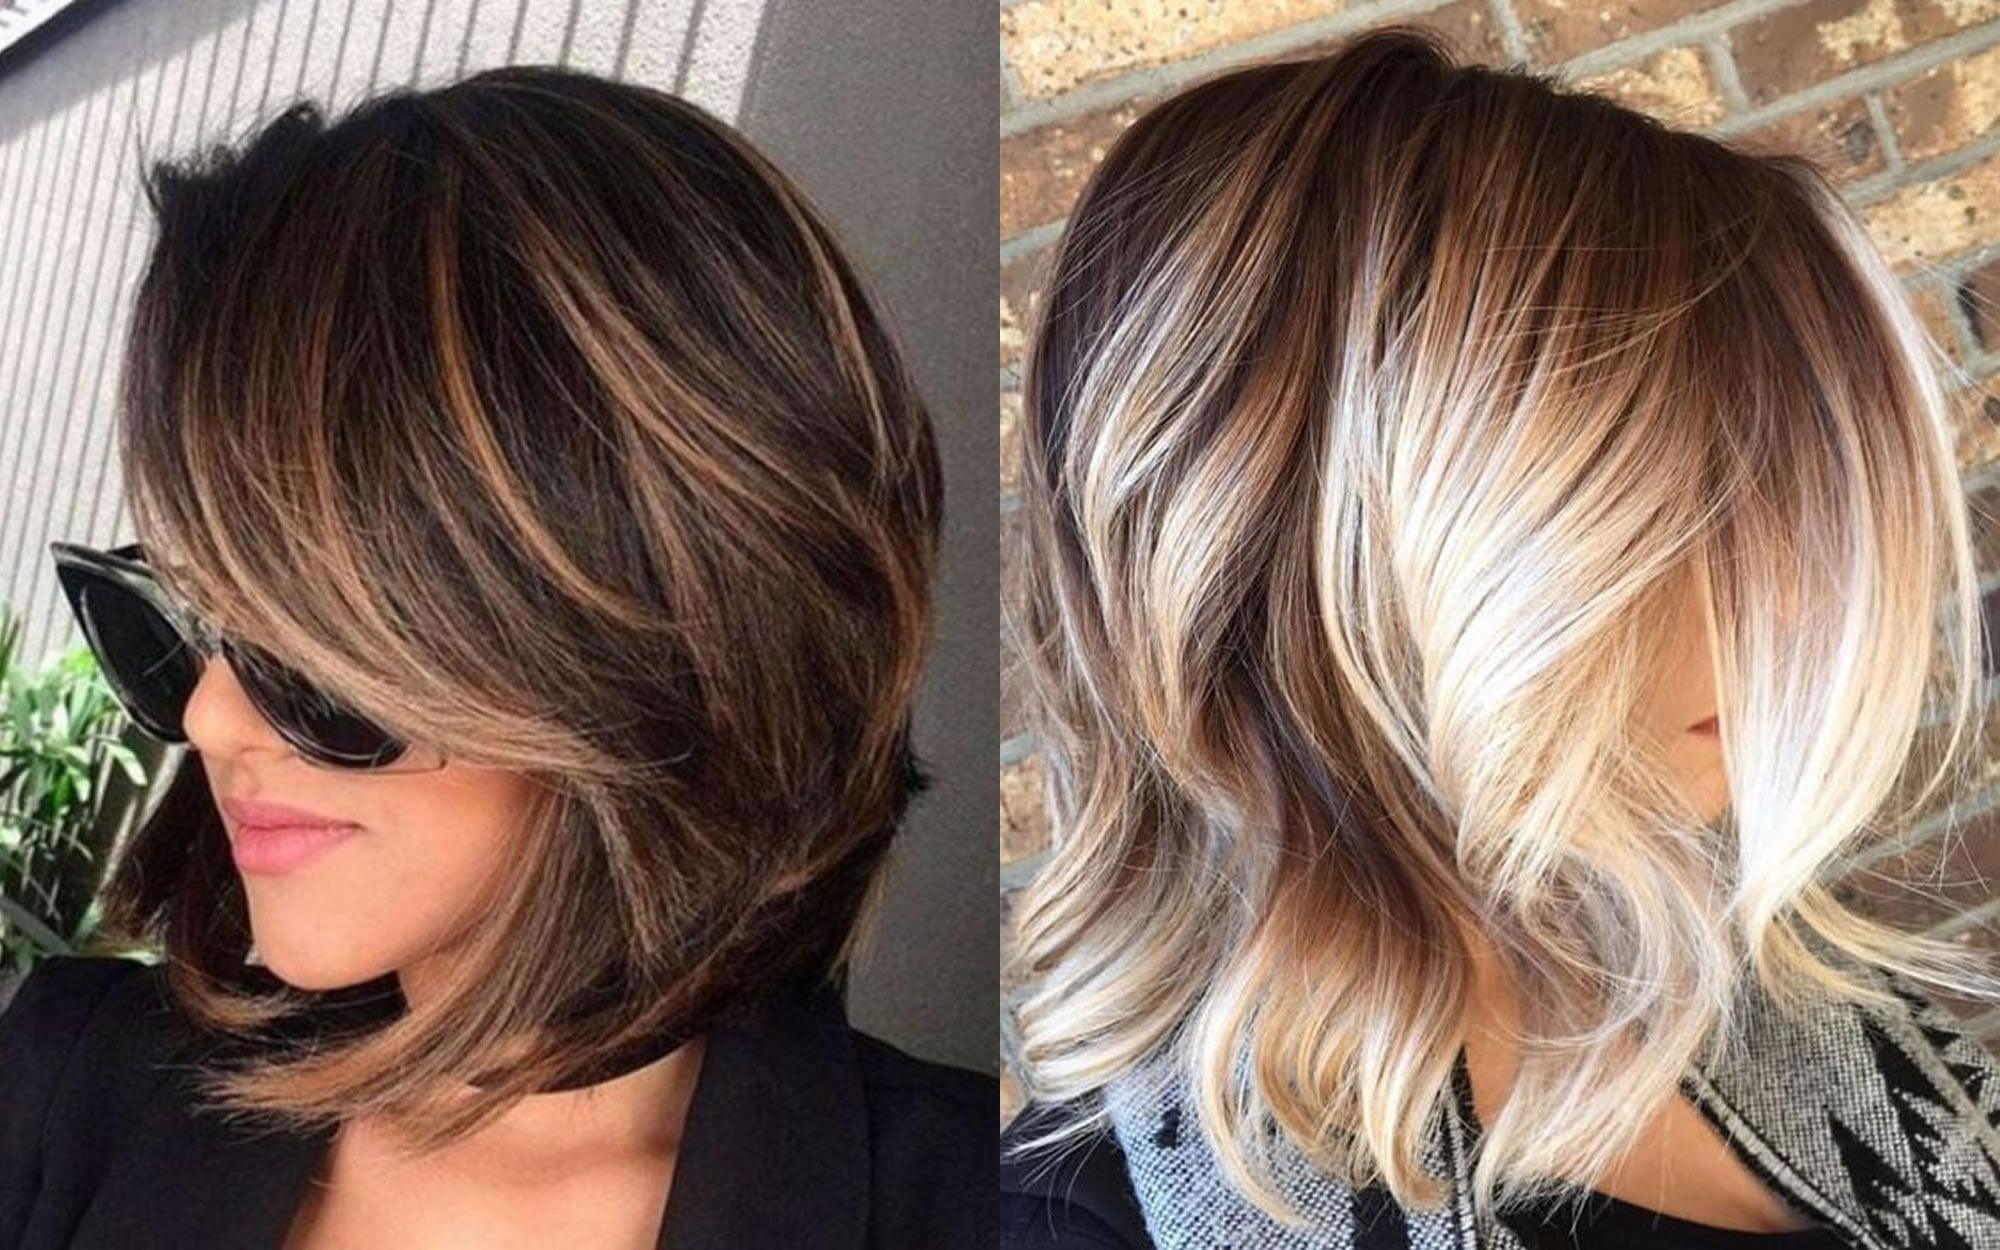 Watch Medium Hairstyles Haircuts for 2019 video